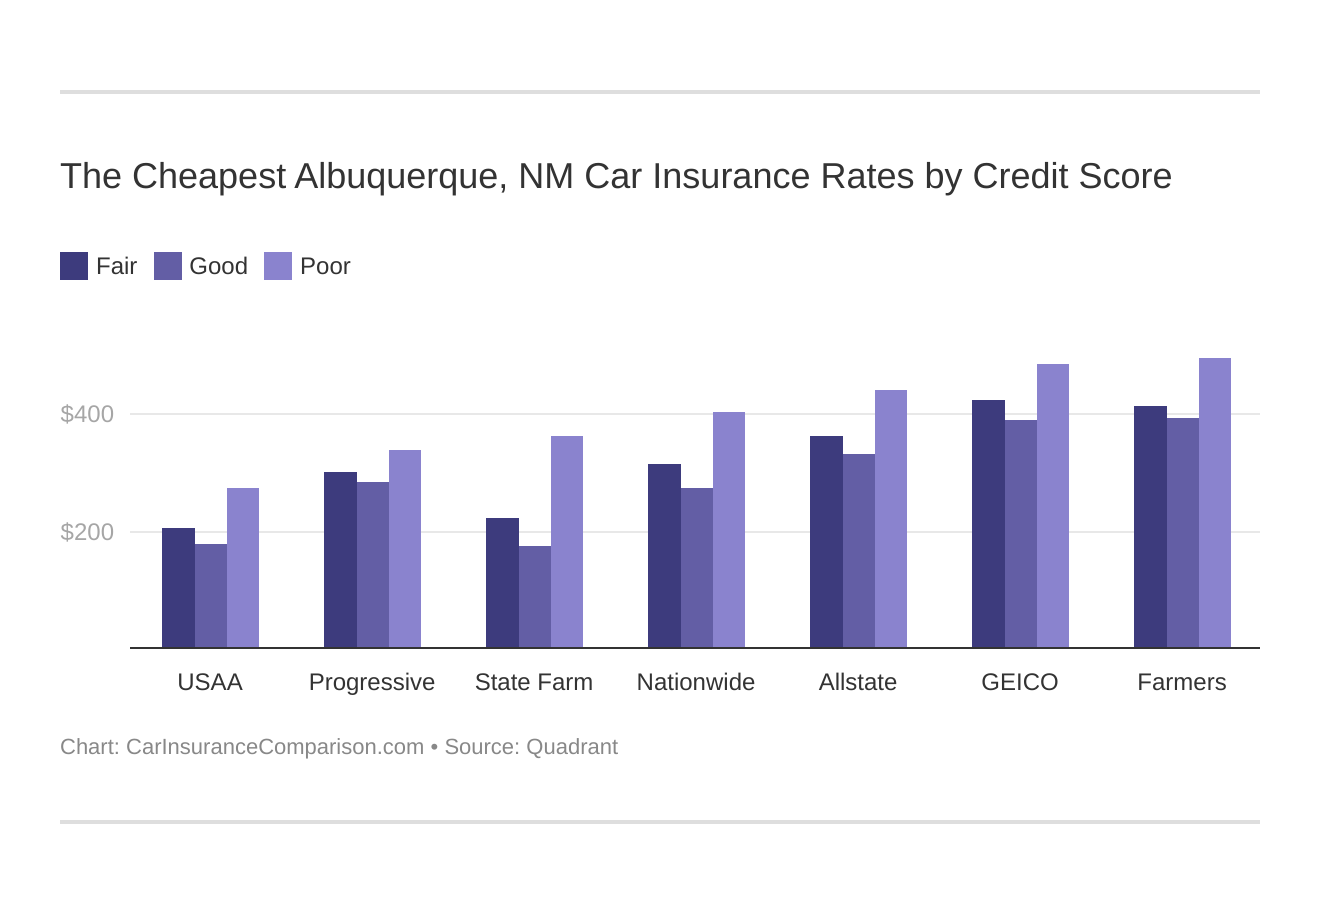 The Cheapest Albuquerque, NM Car Insurance Rates by Credit Score